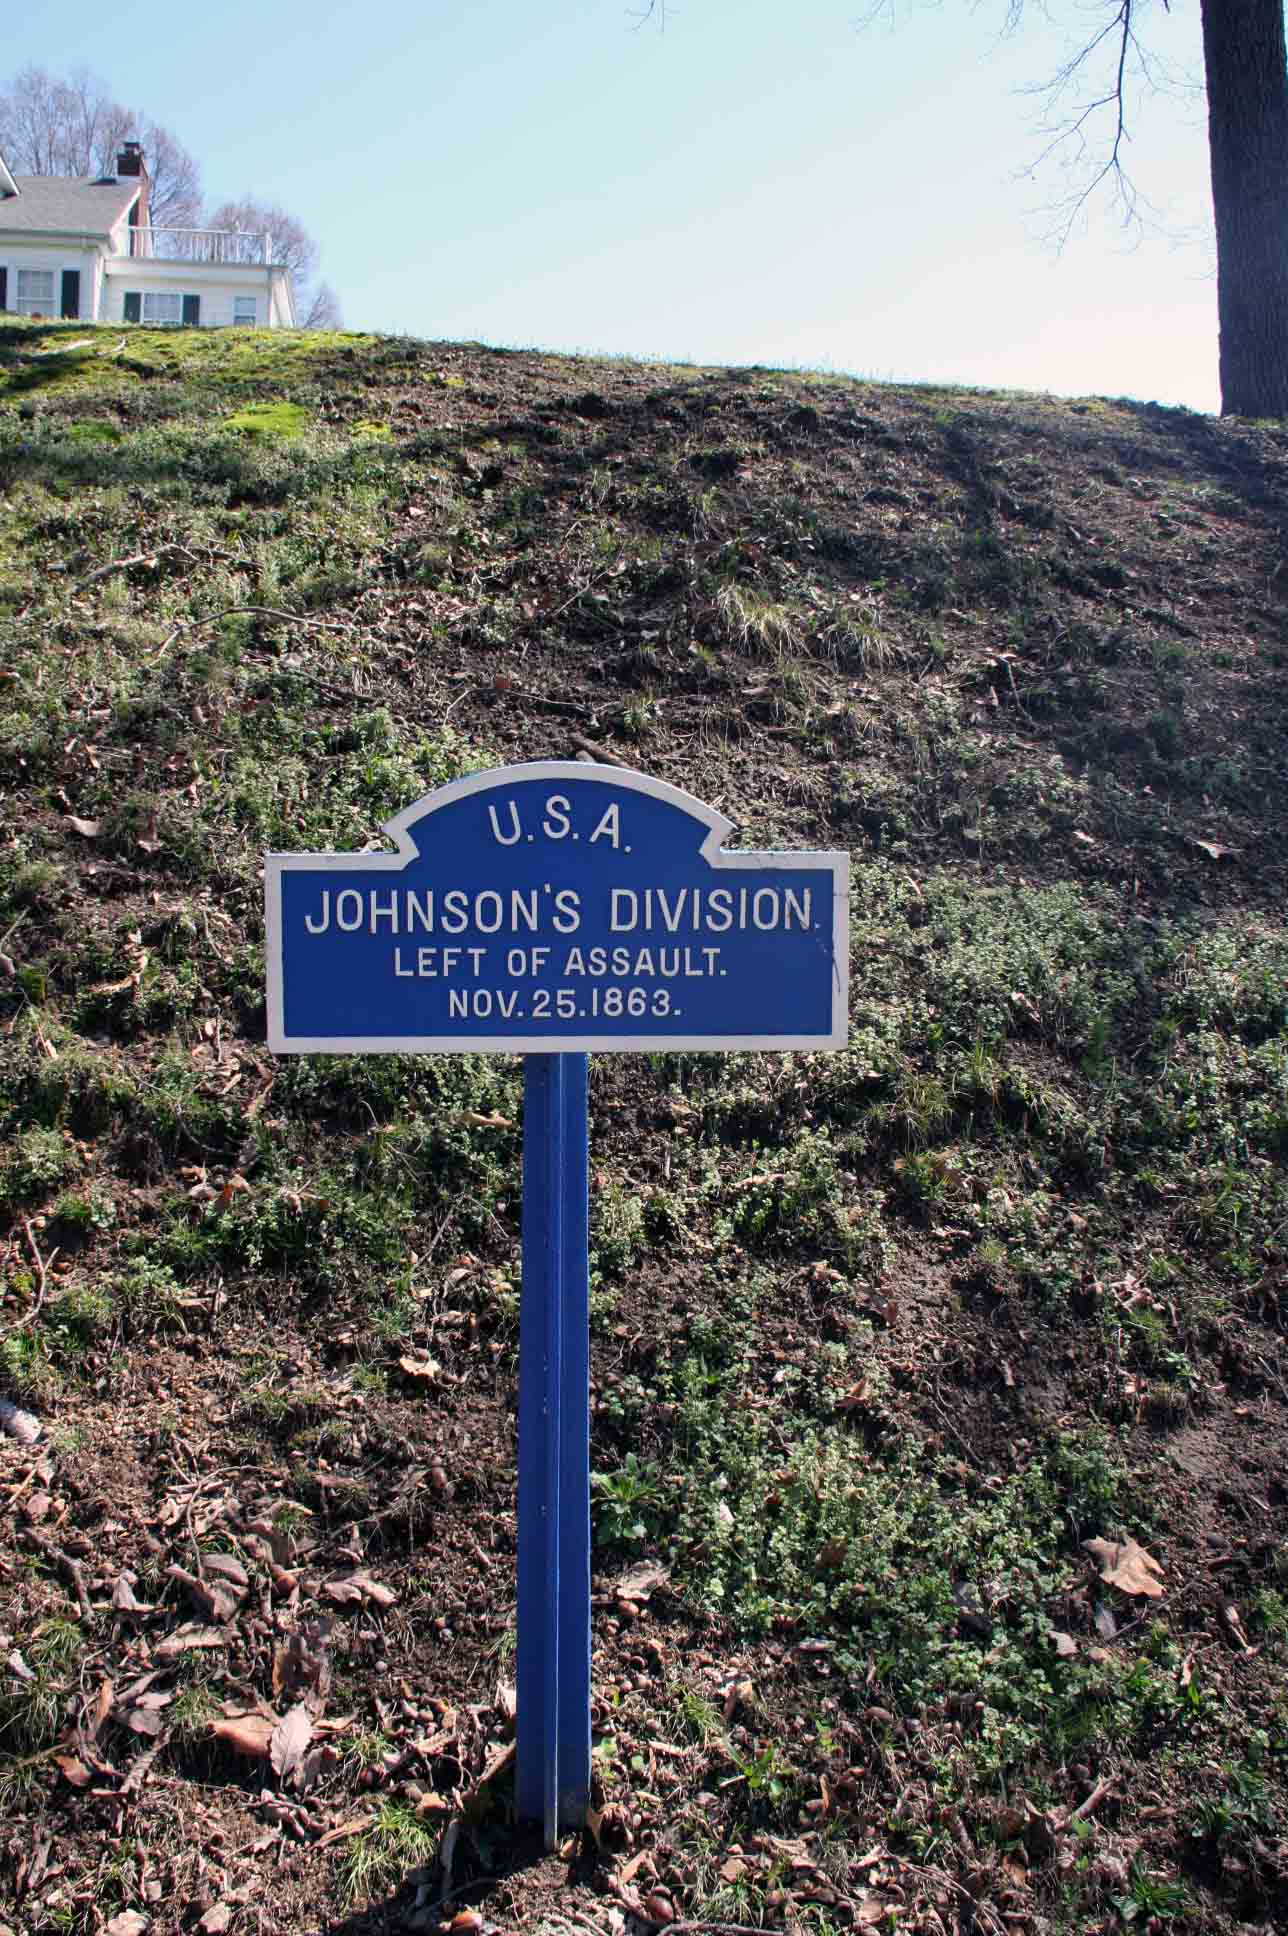 Johnson's Division Sign, click photo to enlarge.